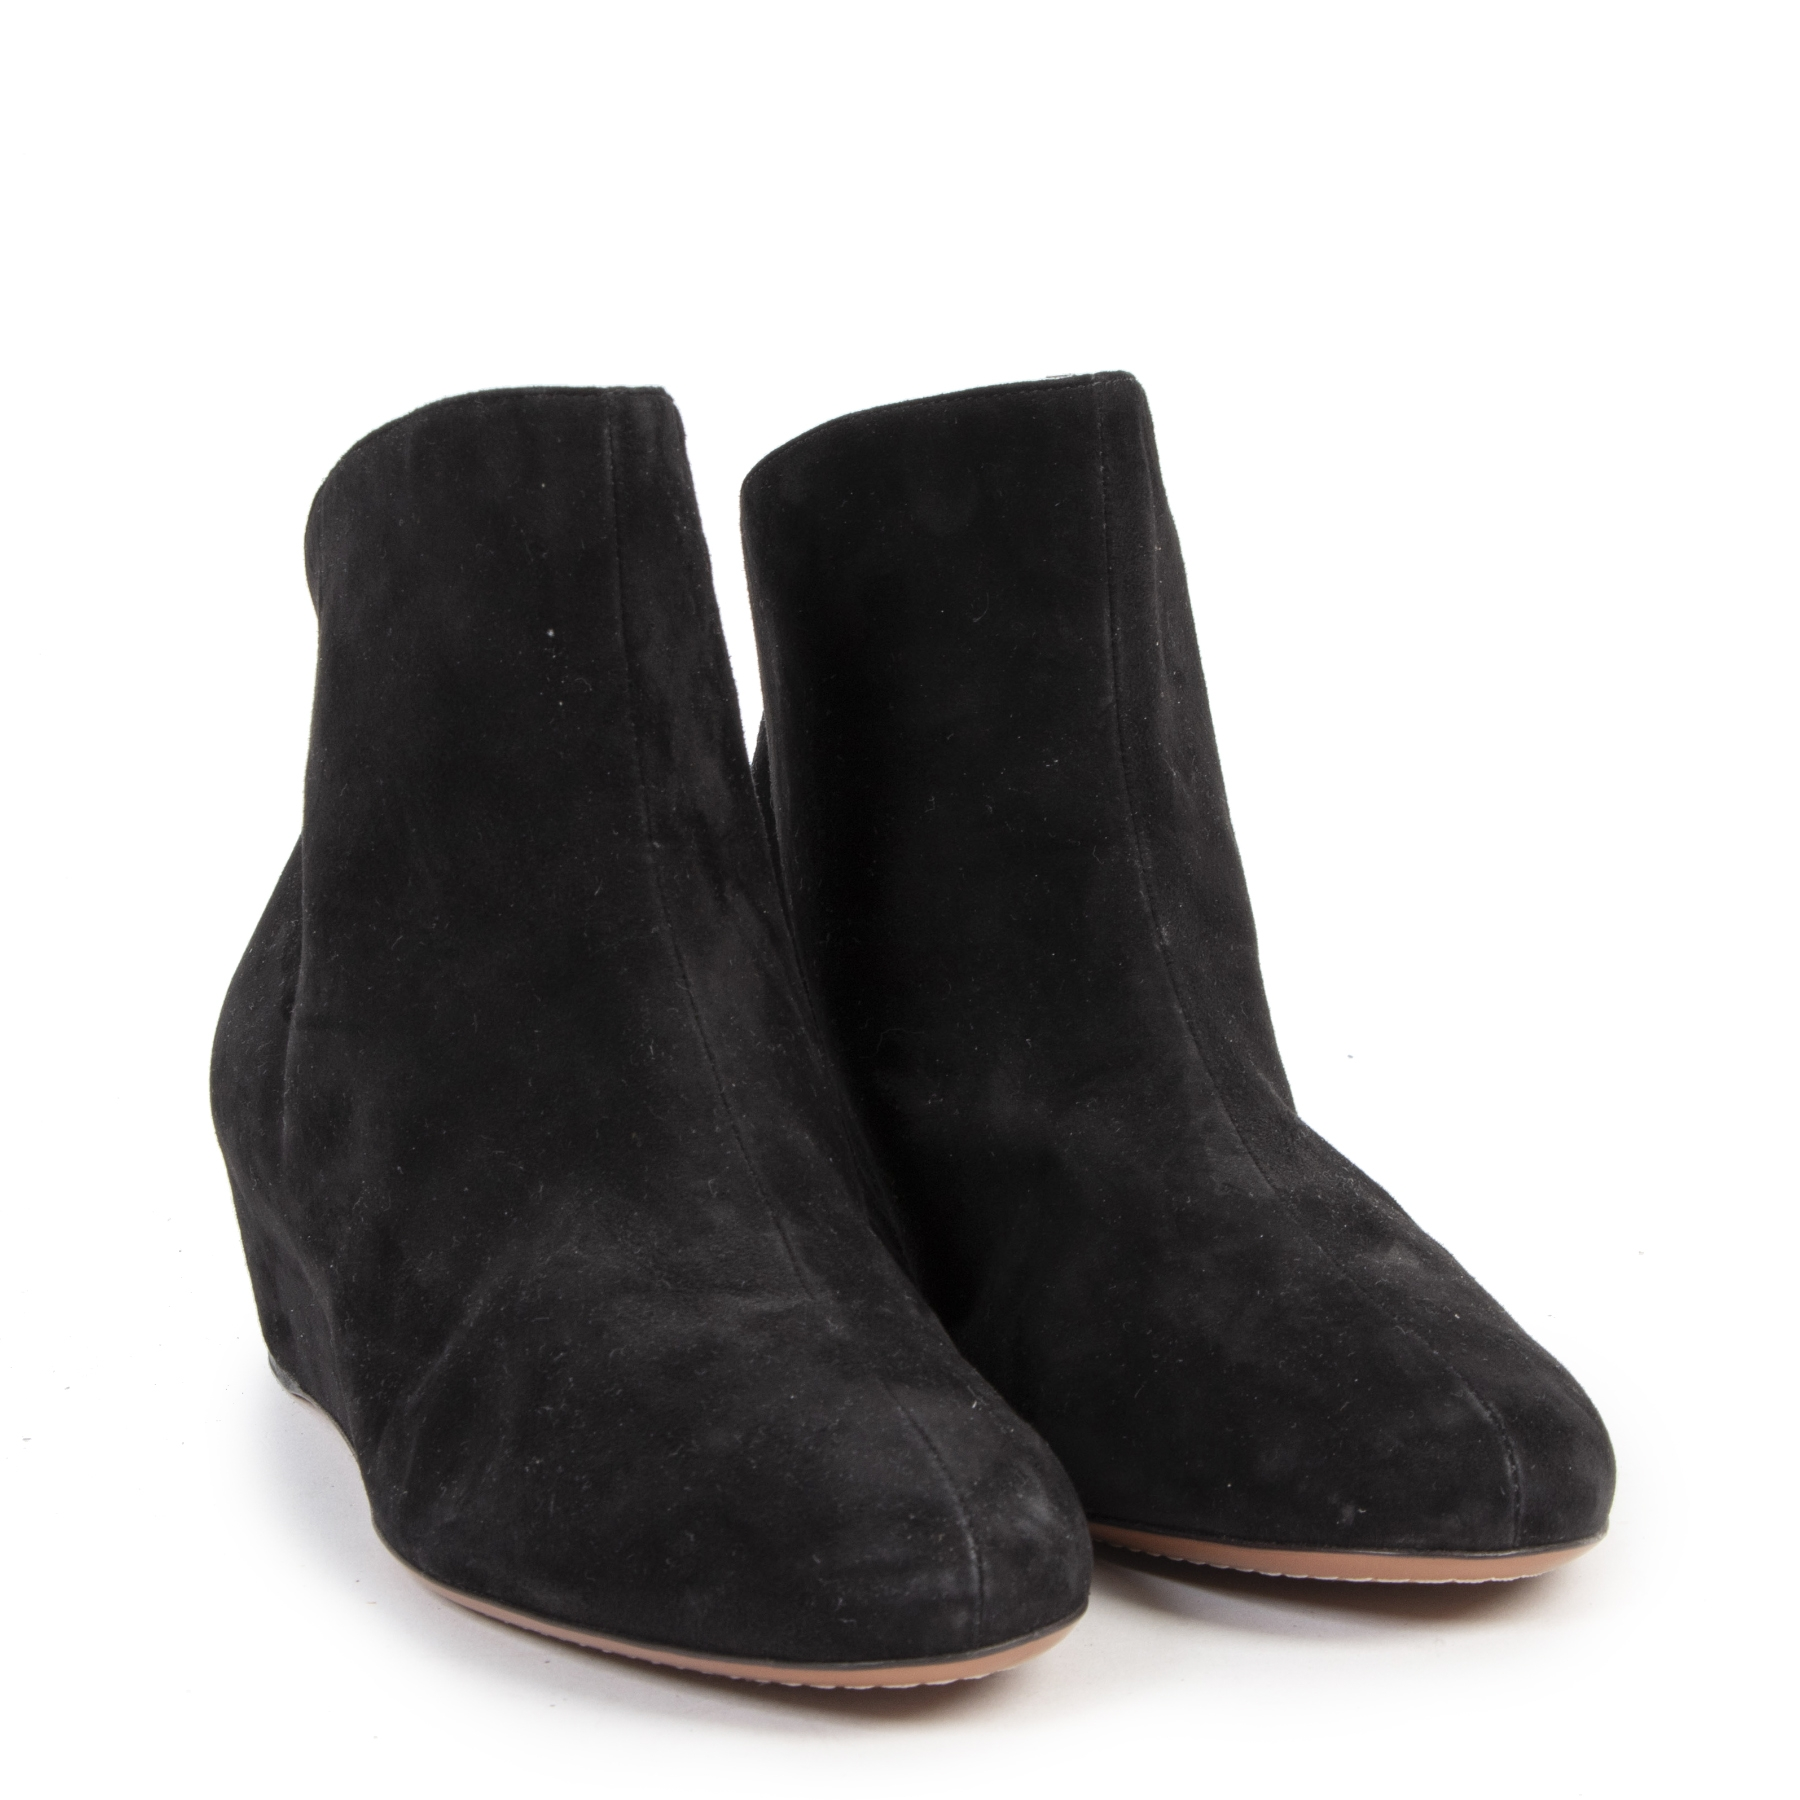 Authentique seconde-main vintage Alaia Black Suede Boots - Size 39 achète en ligne webshop LabelLOV